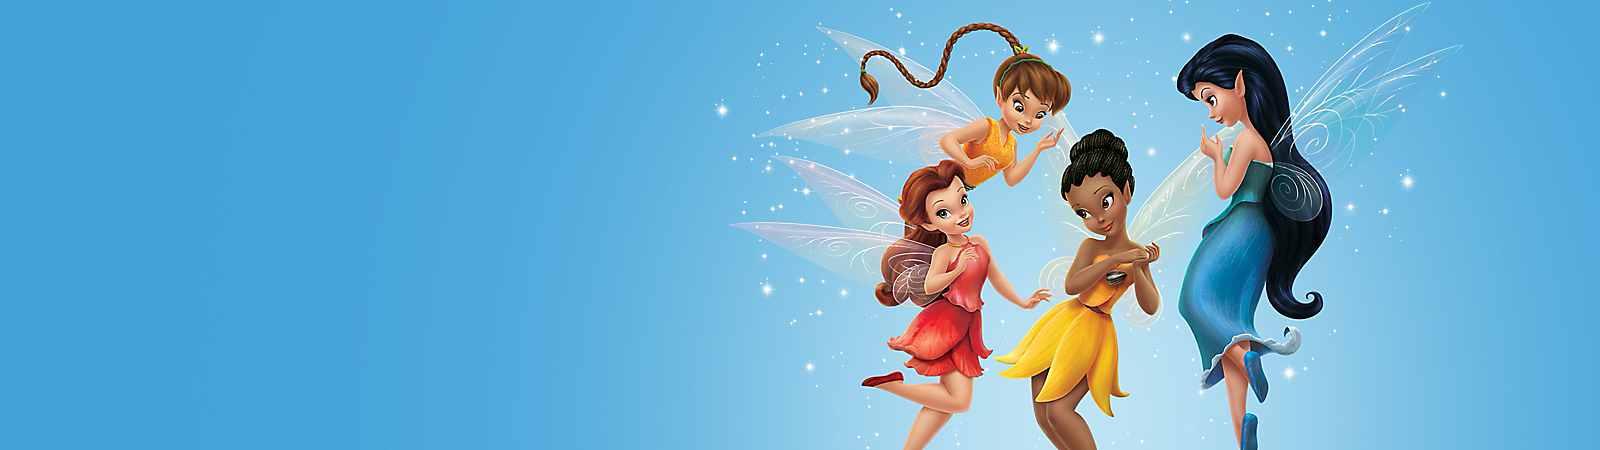 Background image of Fairies